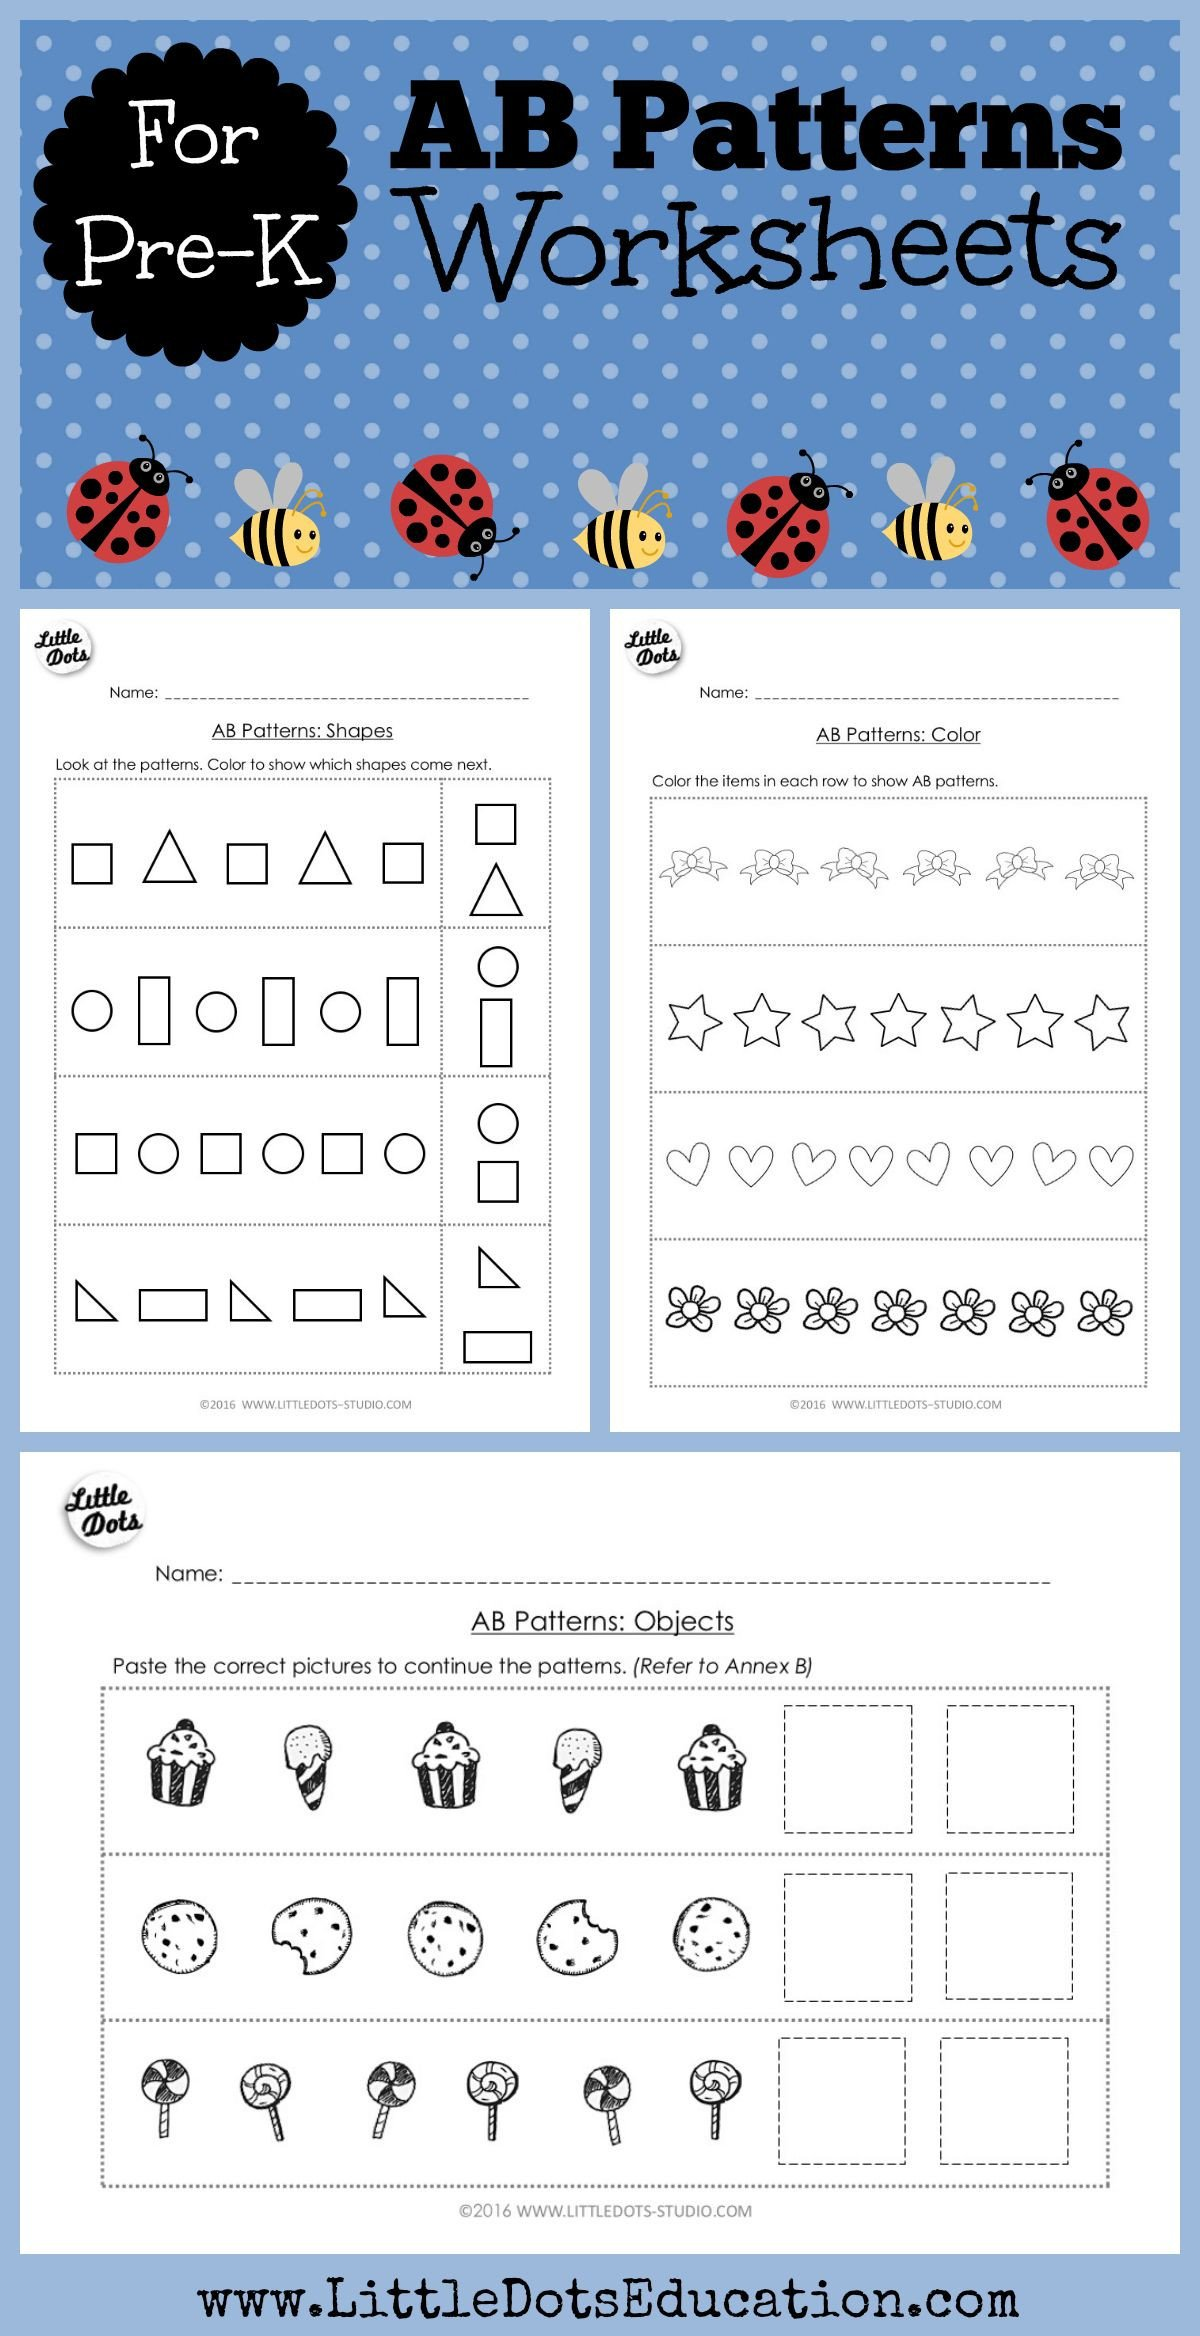 Kindergarten Ab Pattern Worksheets Pre K Math Ab Patterns Worksheets and Activities